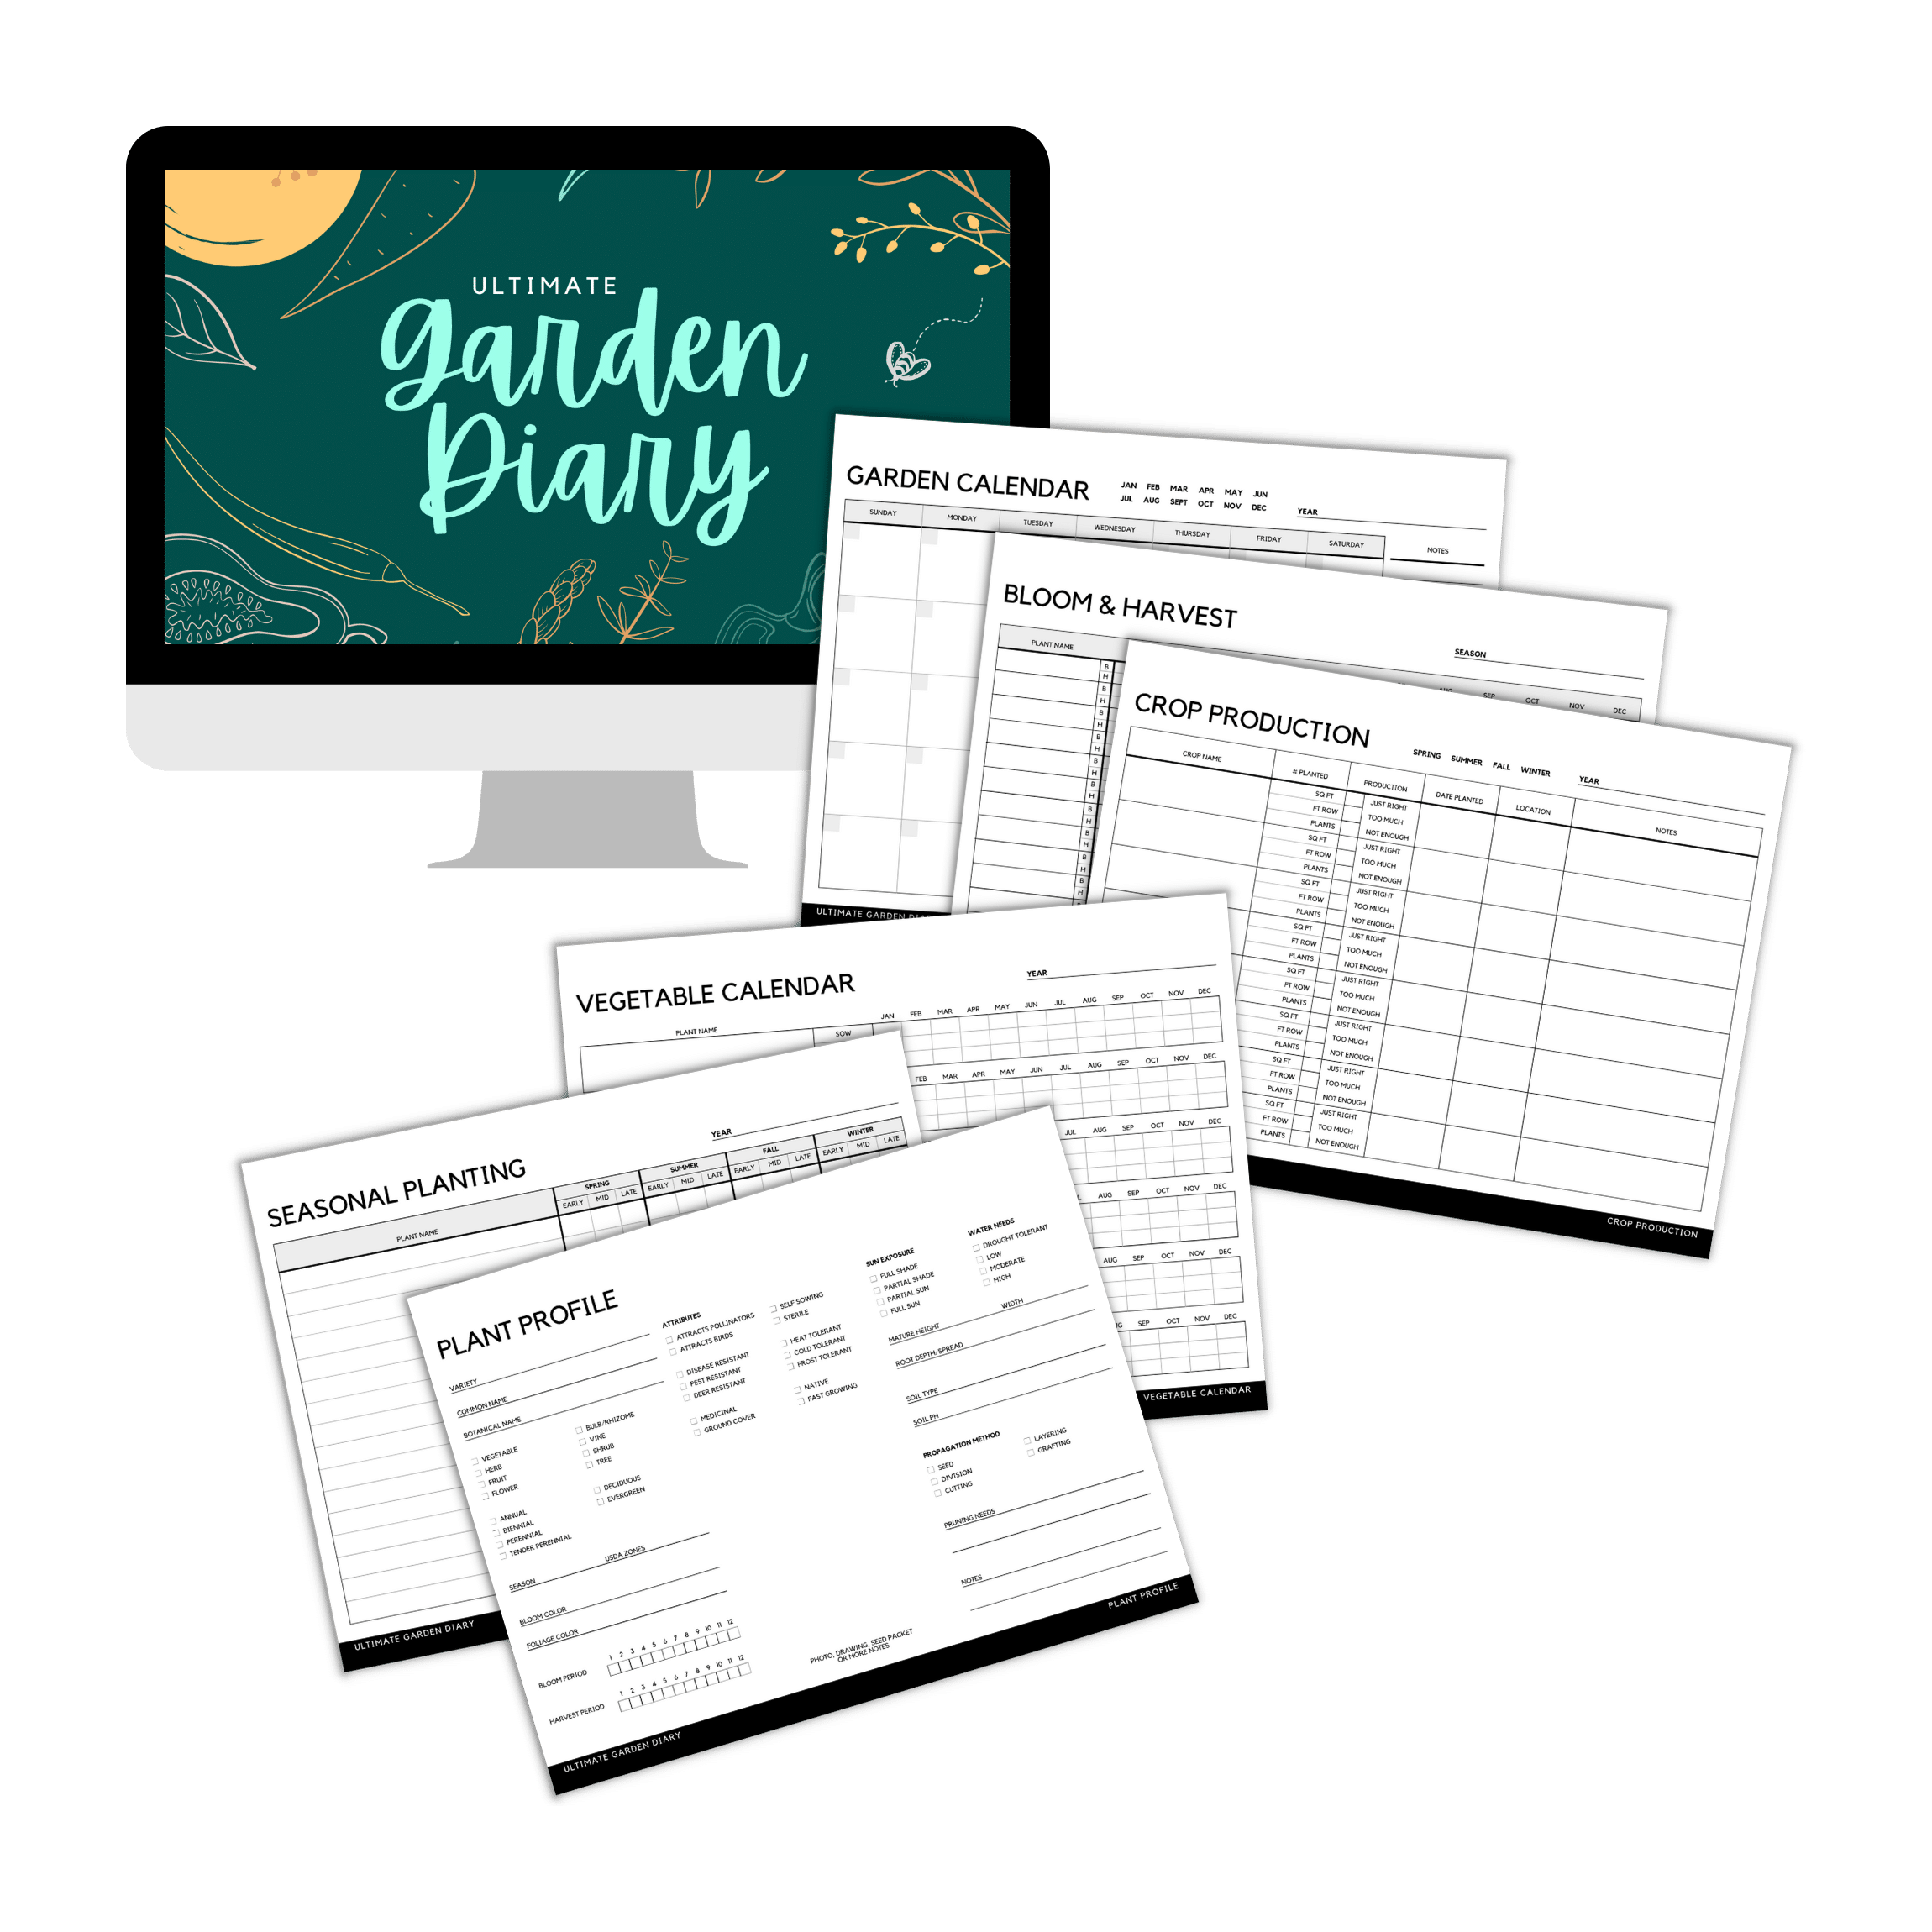 Preview of Ultimate Garden Diary PDF pages